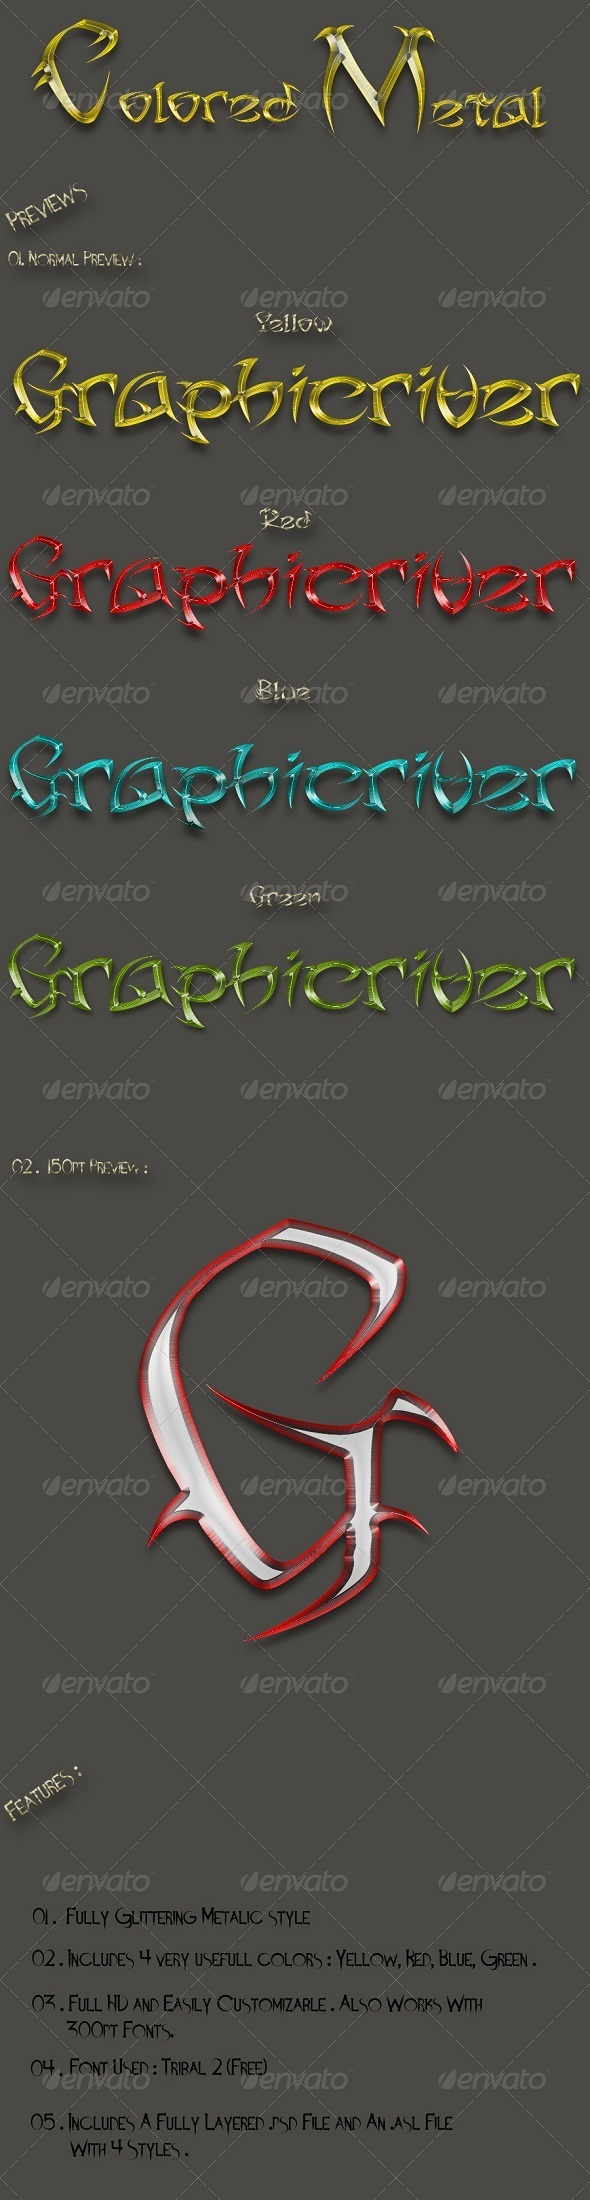 "Colored Metal Vol.1  #GraphicRiver         ""Colored Metal"" is a Photoshop text style with four excellent colored scheme.  	 This pack includes :  	 ? An .asl file with four styles. ? A fully layered and easily editable .psd file. ? A text file with installation information and download link of the font that is used in preview. ? You can easily know more about the style seeing the preview image and screenshots.  	 ? Thanks.                     Created: 4 December 13                    Add-on…"